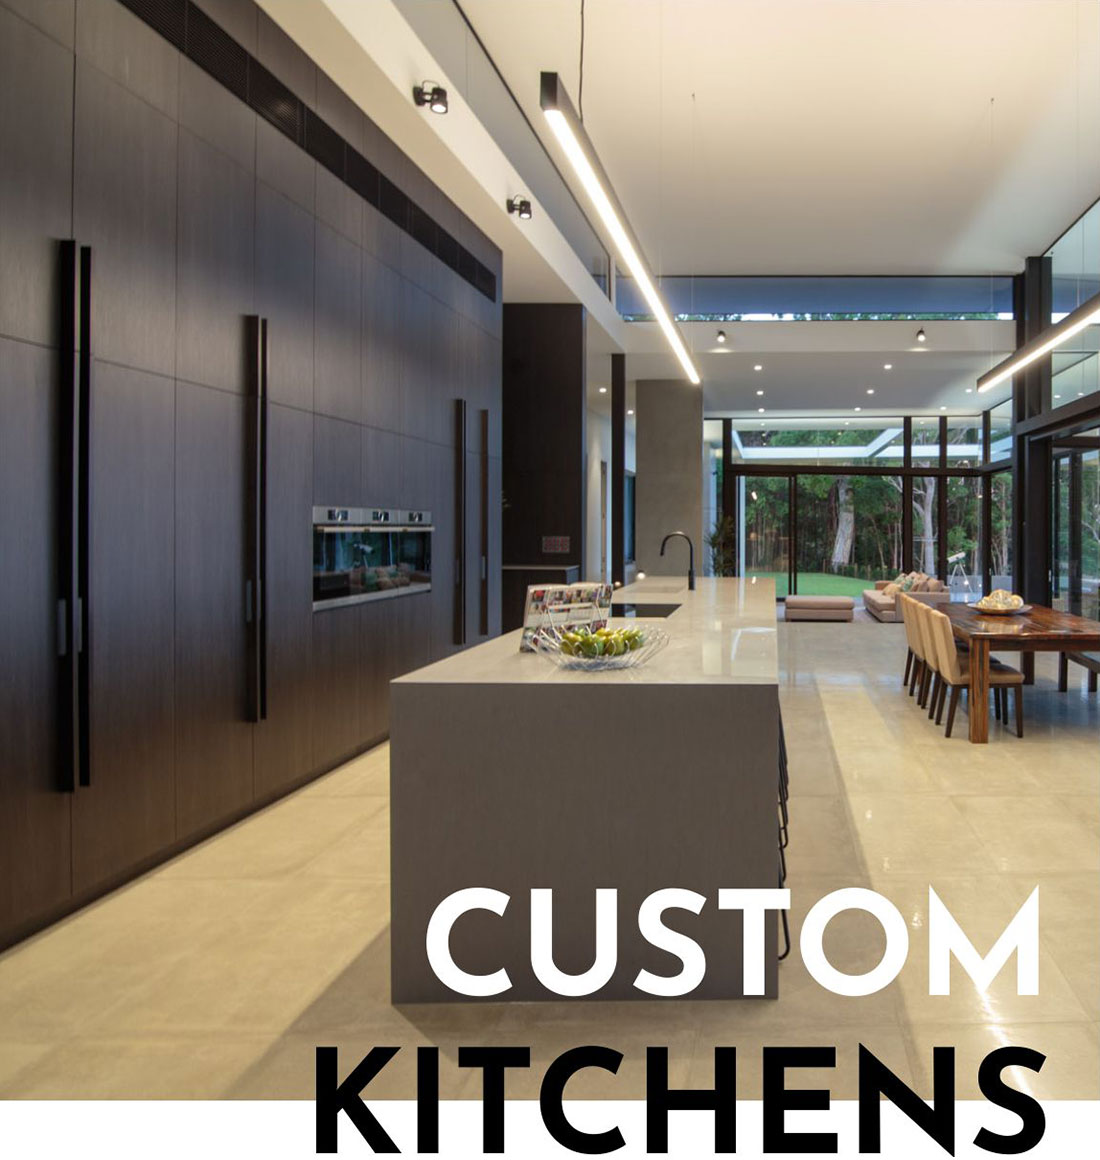 Custom kitchen joinery